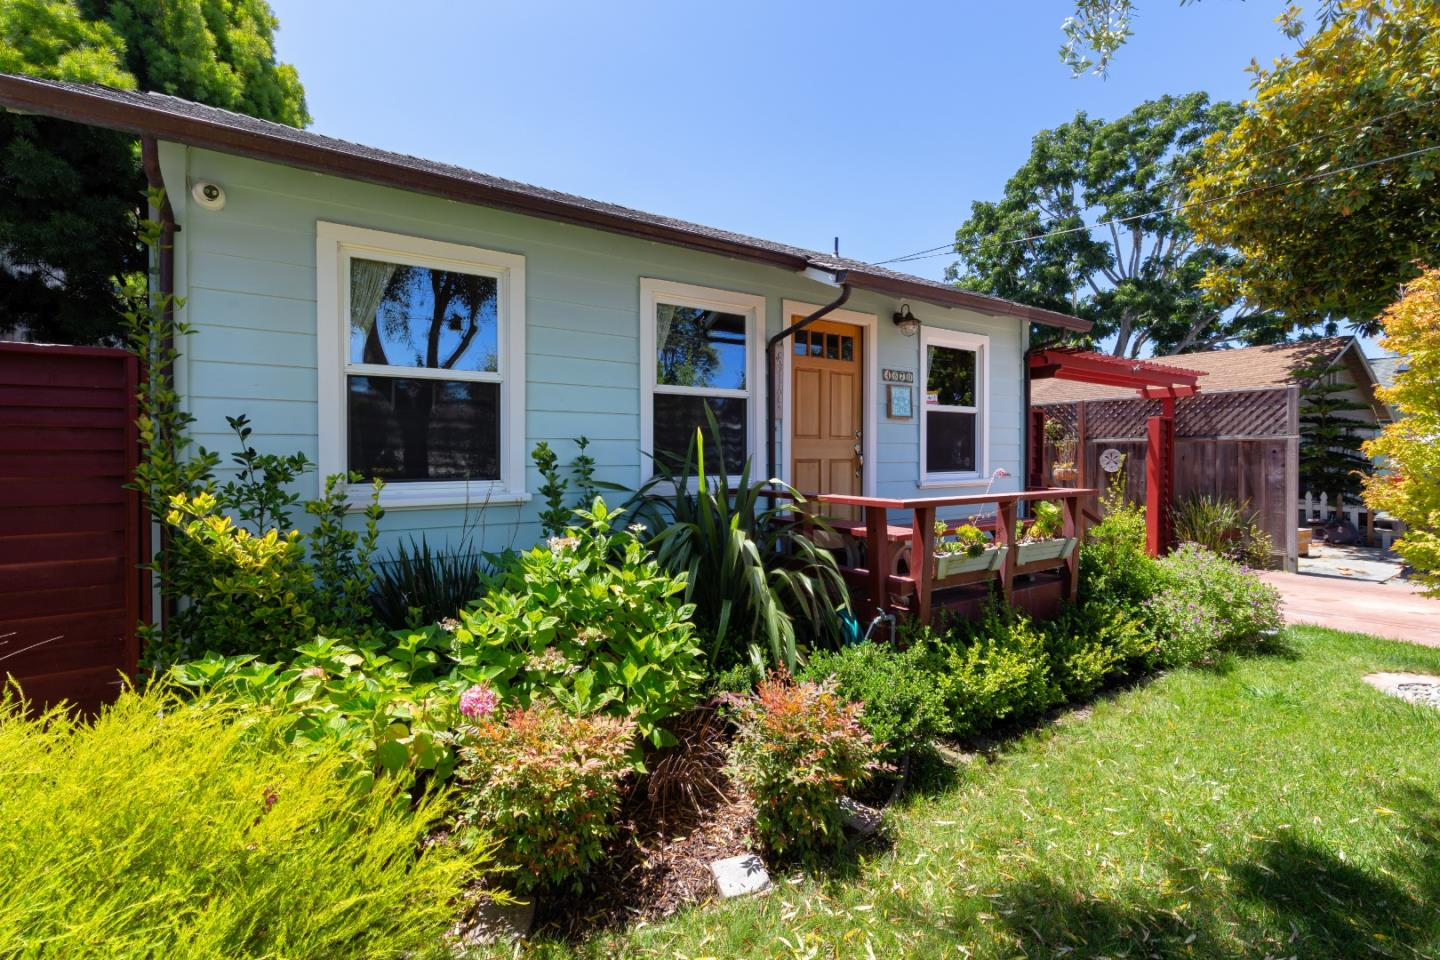 Location, location, location! Don't miss this charming, single level french garden cottage in the popular Capitola Jewel Box area.  Within walking distance to Capitola Village, the Wharf, the beach, Shadowbrook Restaurant, shopping and so much more. Bright and light home has been lovingly updated with bamboo floors, remodeled kitchen and master bath.  Garage has also been updated.  Call for list of all upgrades. Every room is wired for CAT 6 data and there's a high end LTS security system - both accessible from your phone.  Private backyard retreat with southern exposure - perfect for sipping your morning coffee or having a fun party.  Lush front yard is low maintenance with it's underground sprinkler and drip water system.